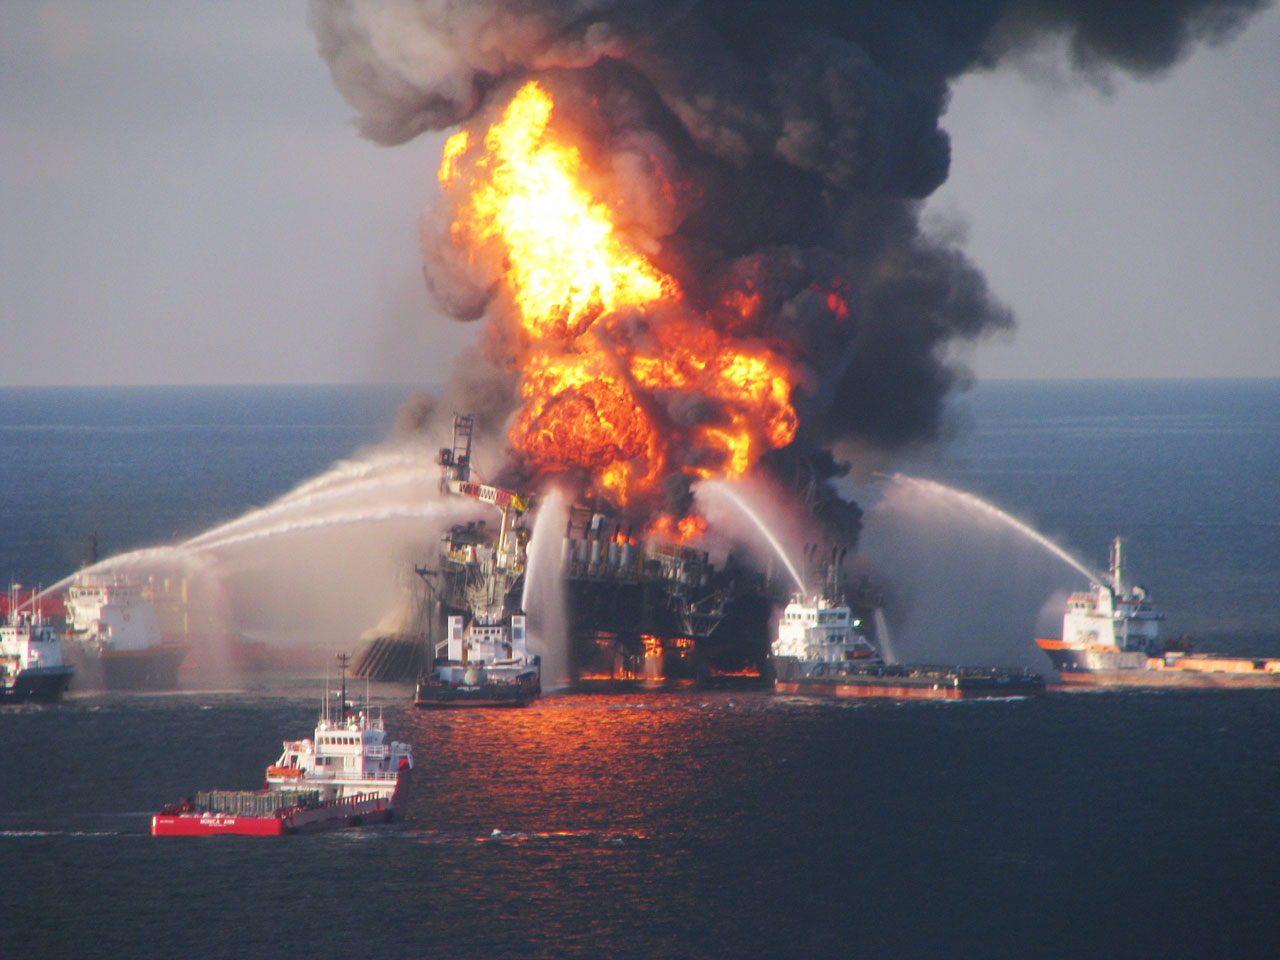 Bp Settles Deepwater Horizon Oil Spill For  20 Billion